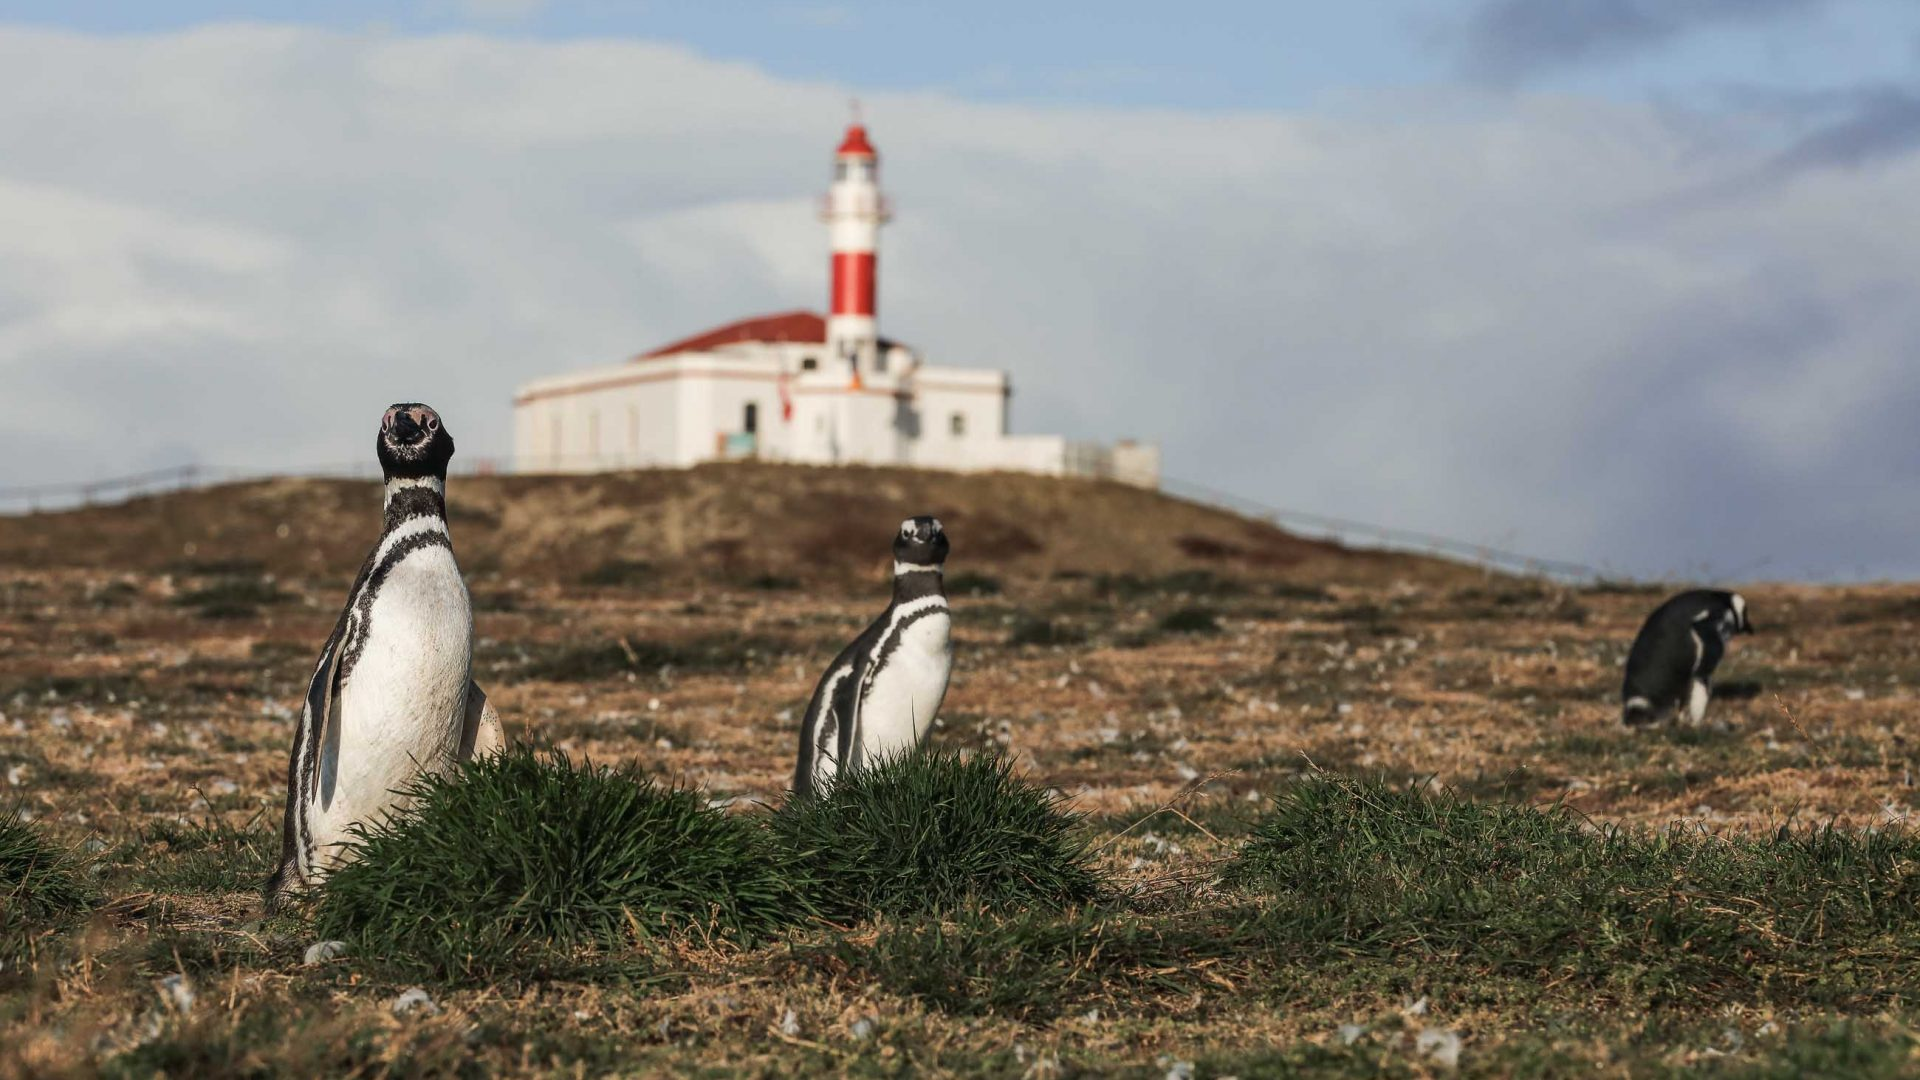 Magellanic Penguins at Isla Magdalena with a red and white lighthouse in the background.